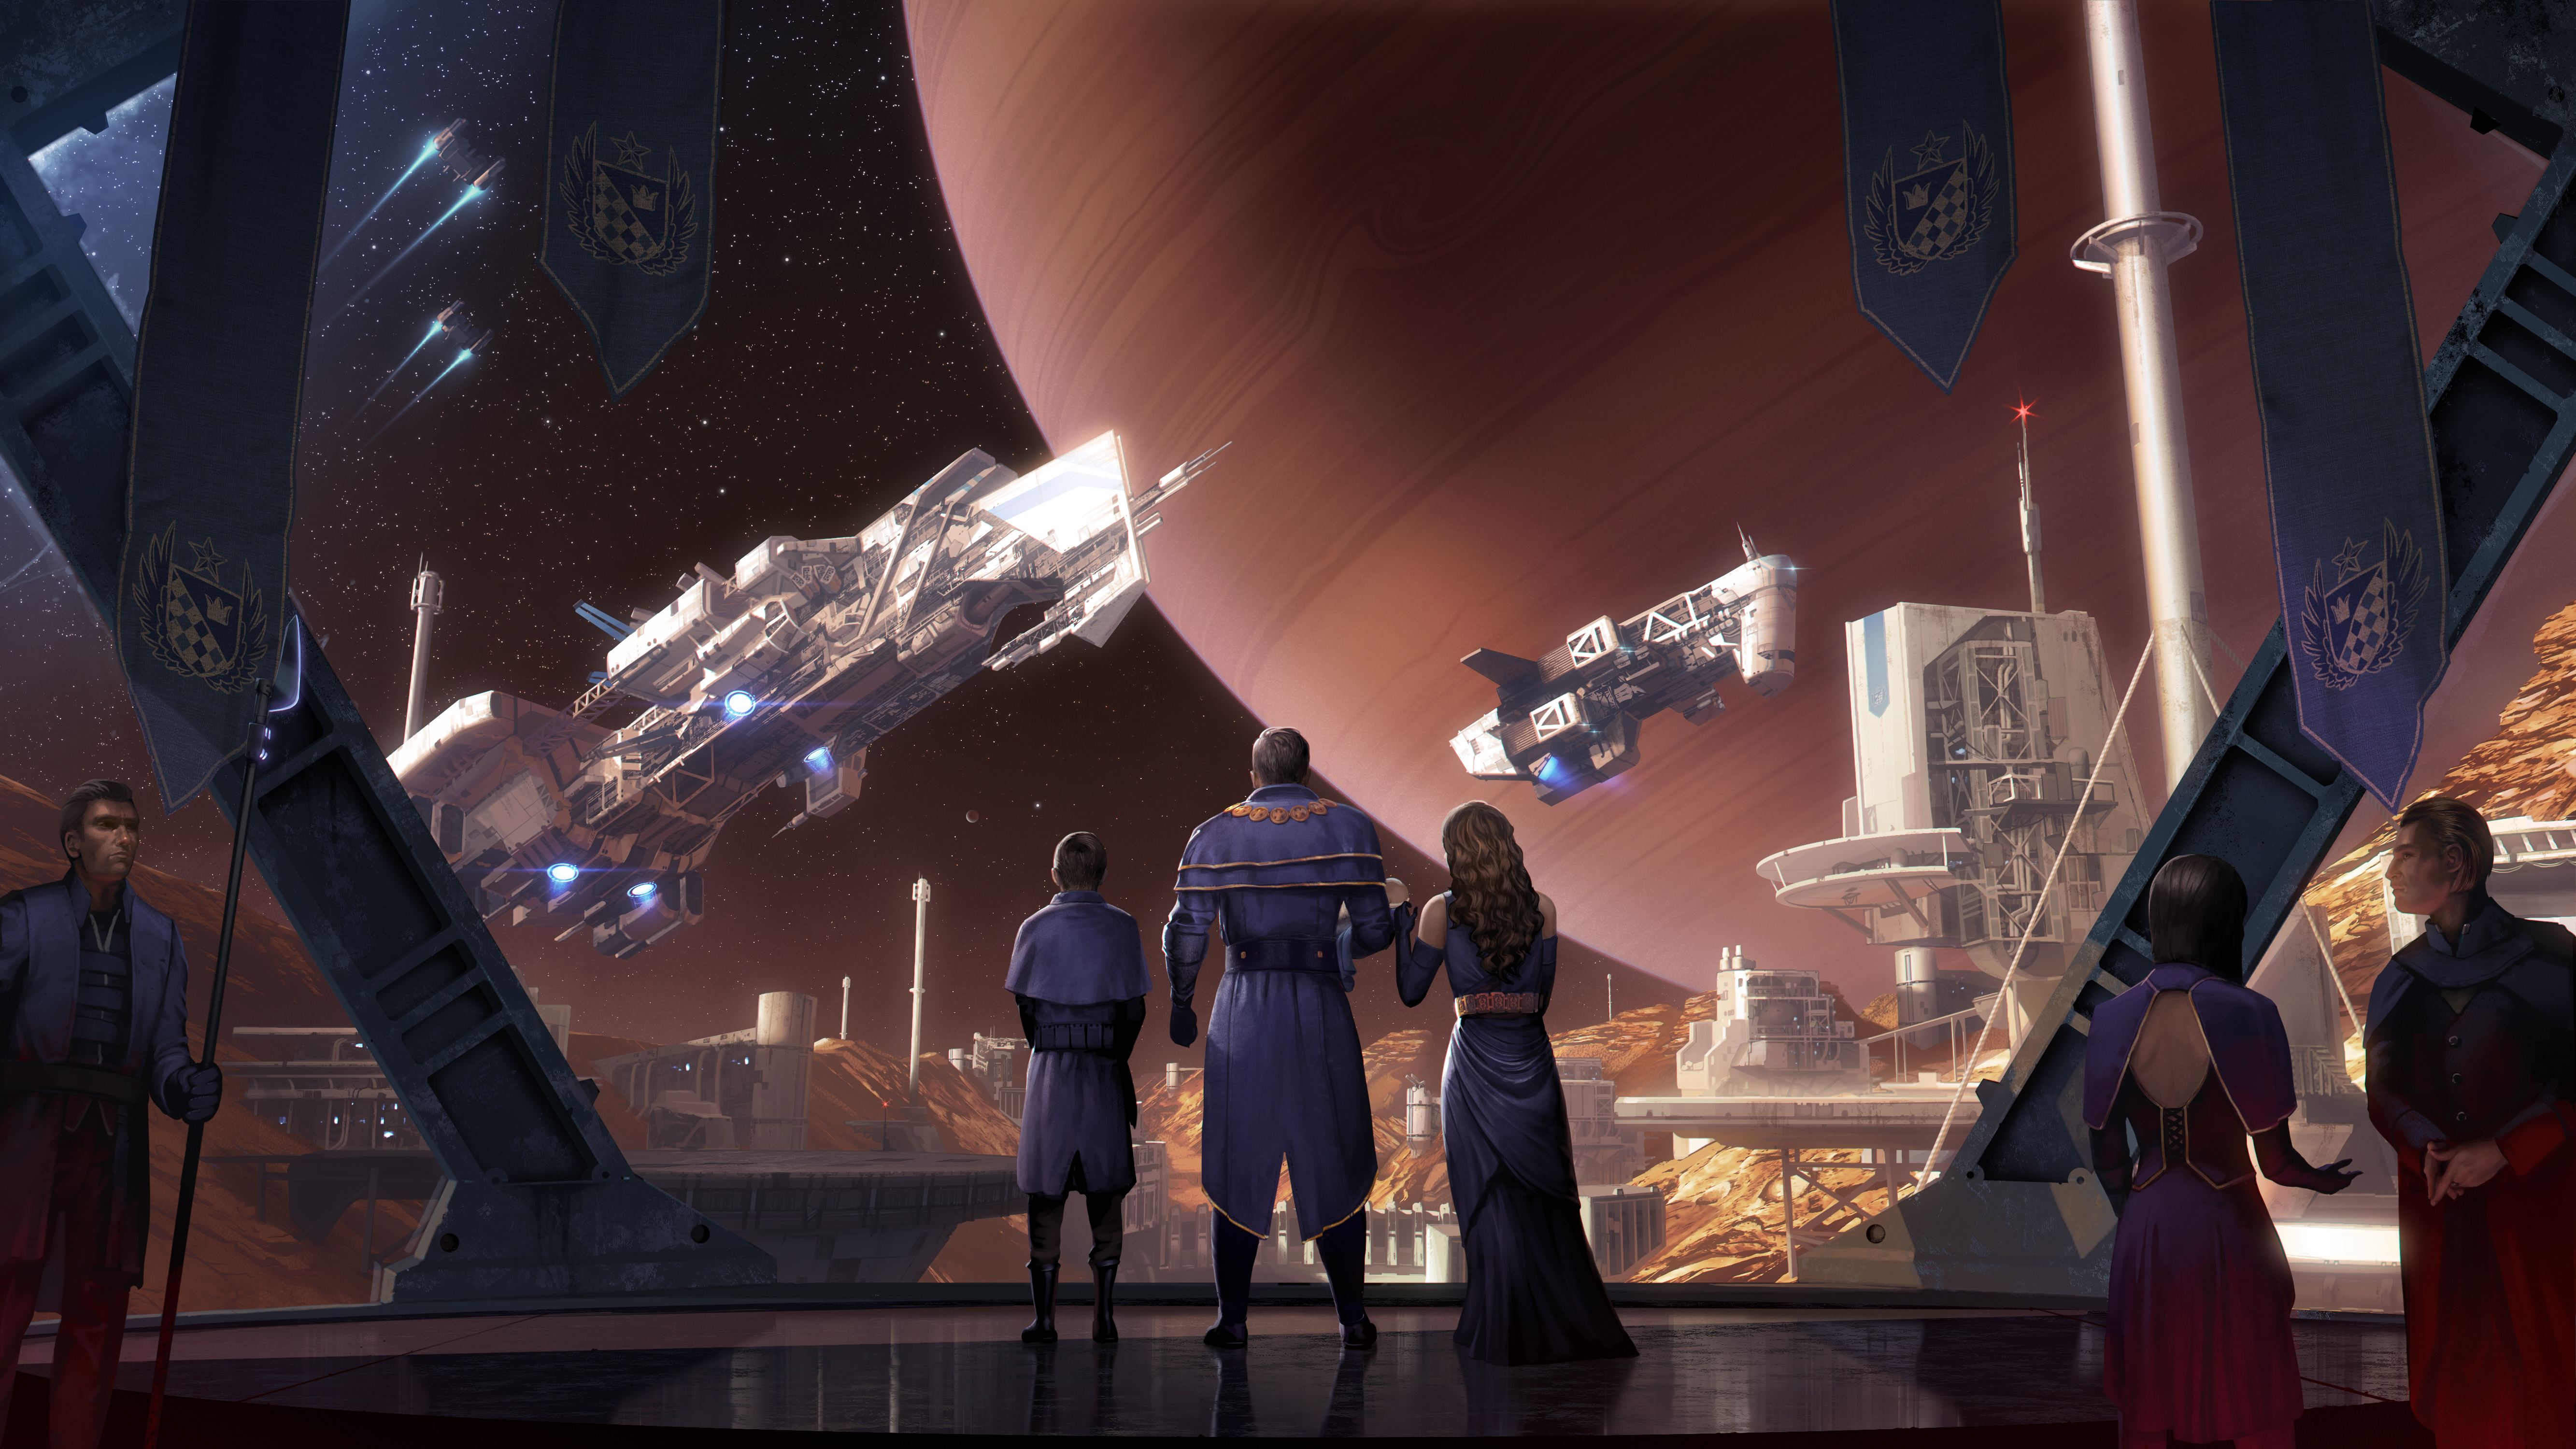 Sex scandals are tearing the galaxy apart in my Star Dynasties campaign